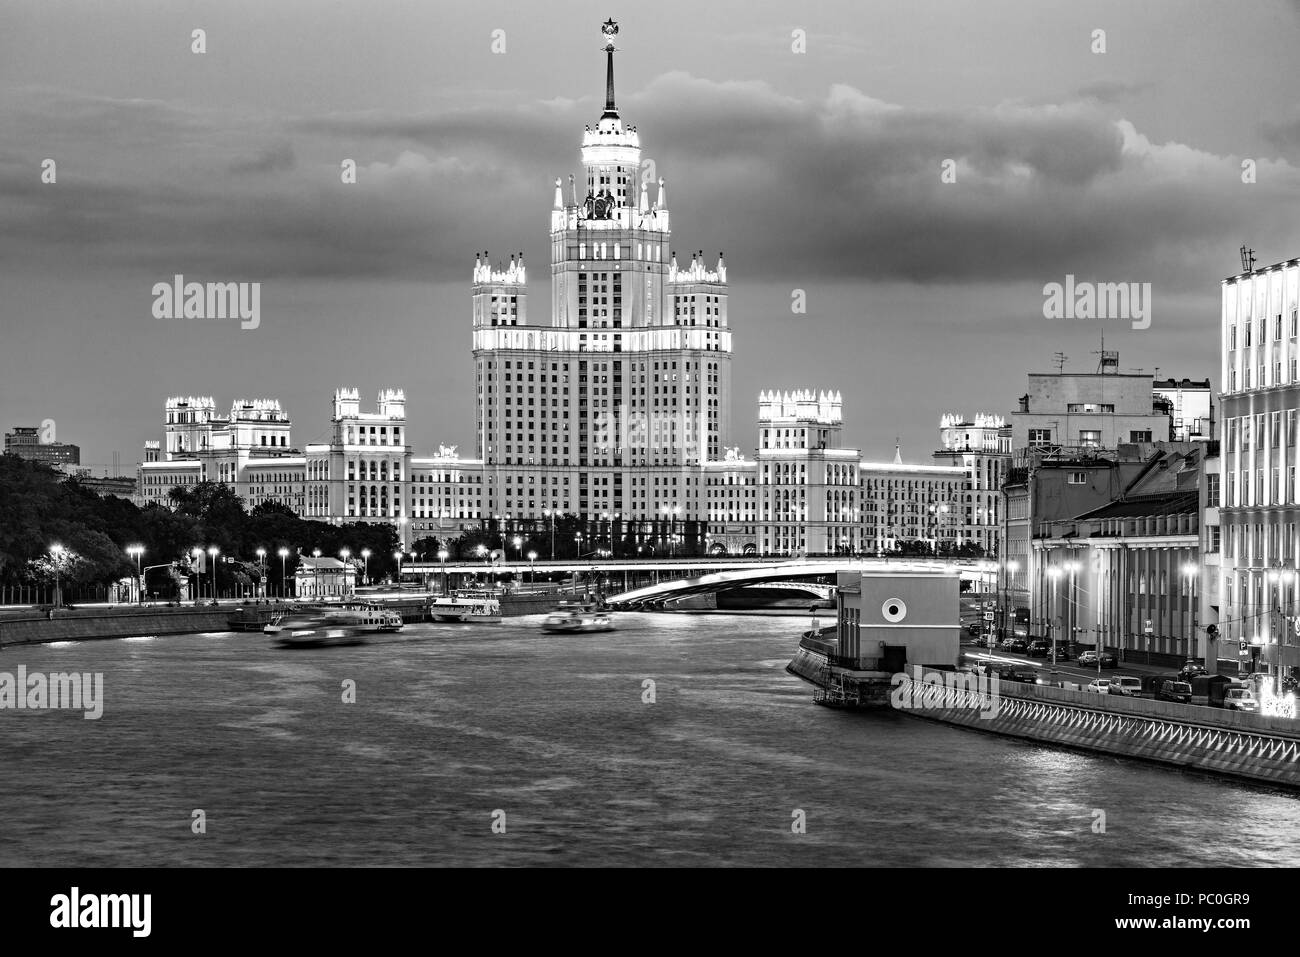 Retro skyscraper on Kotelnicheskaya embankment by Moscow river at sunset time. Moscow. Russia. Stock Photo